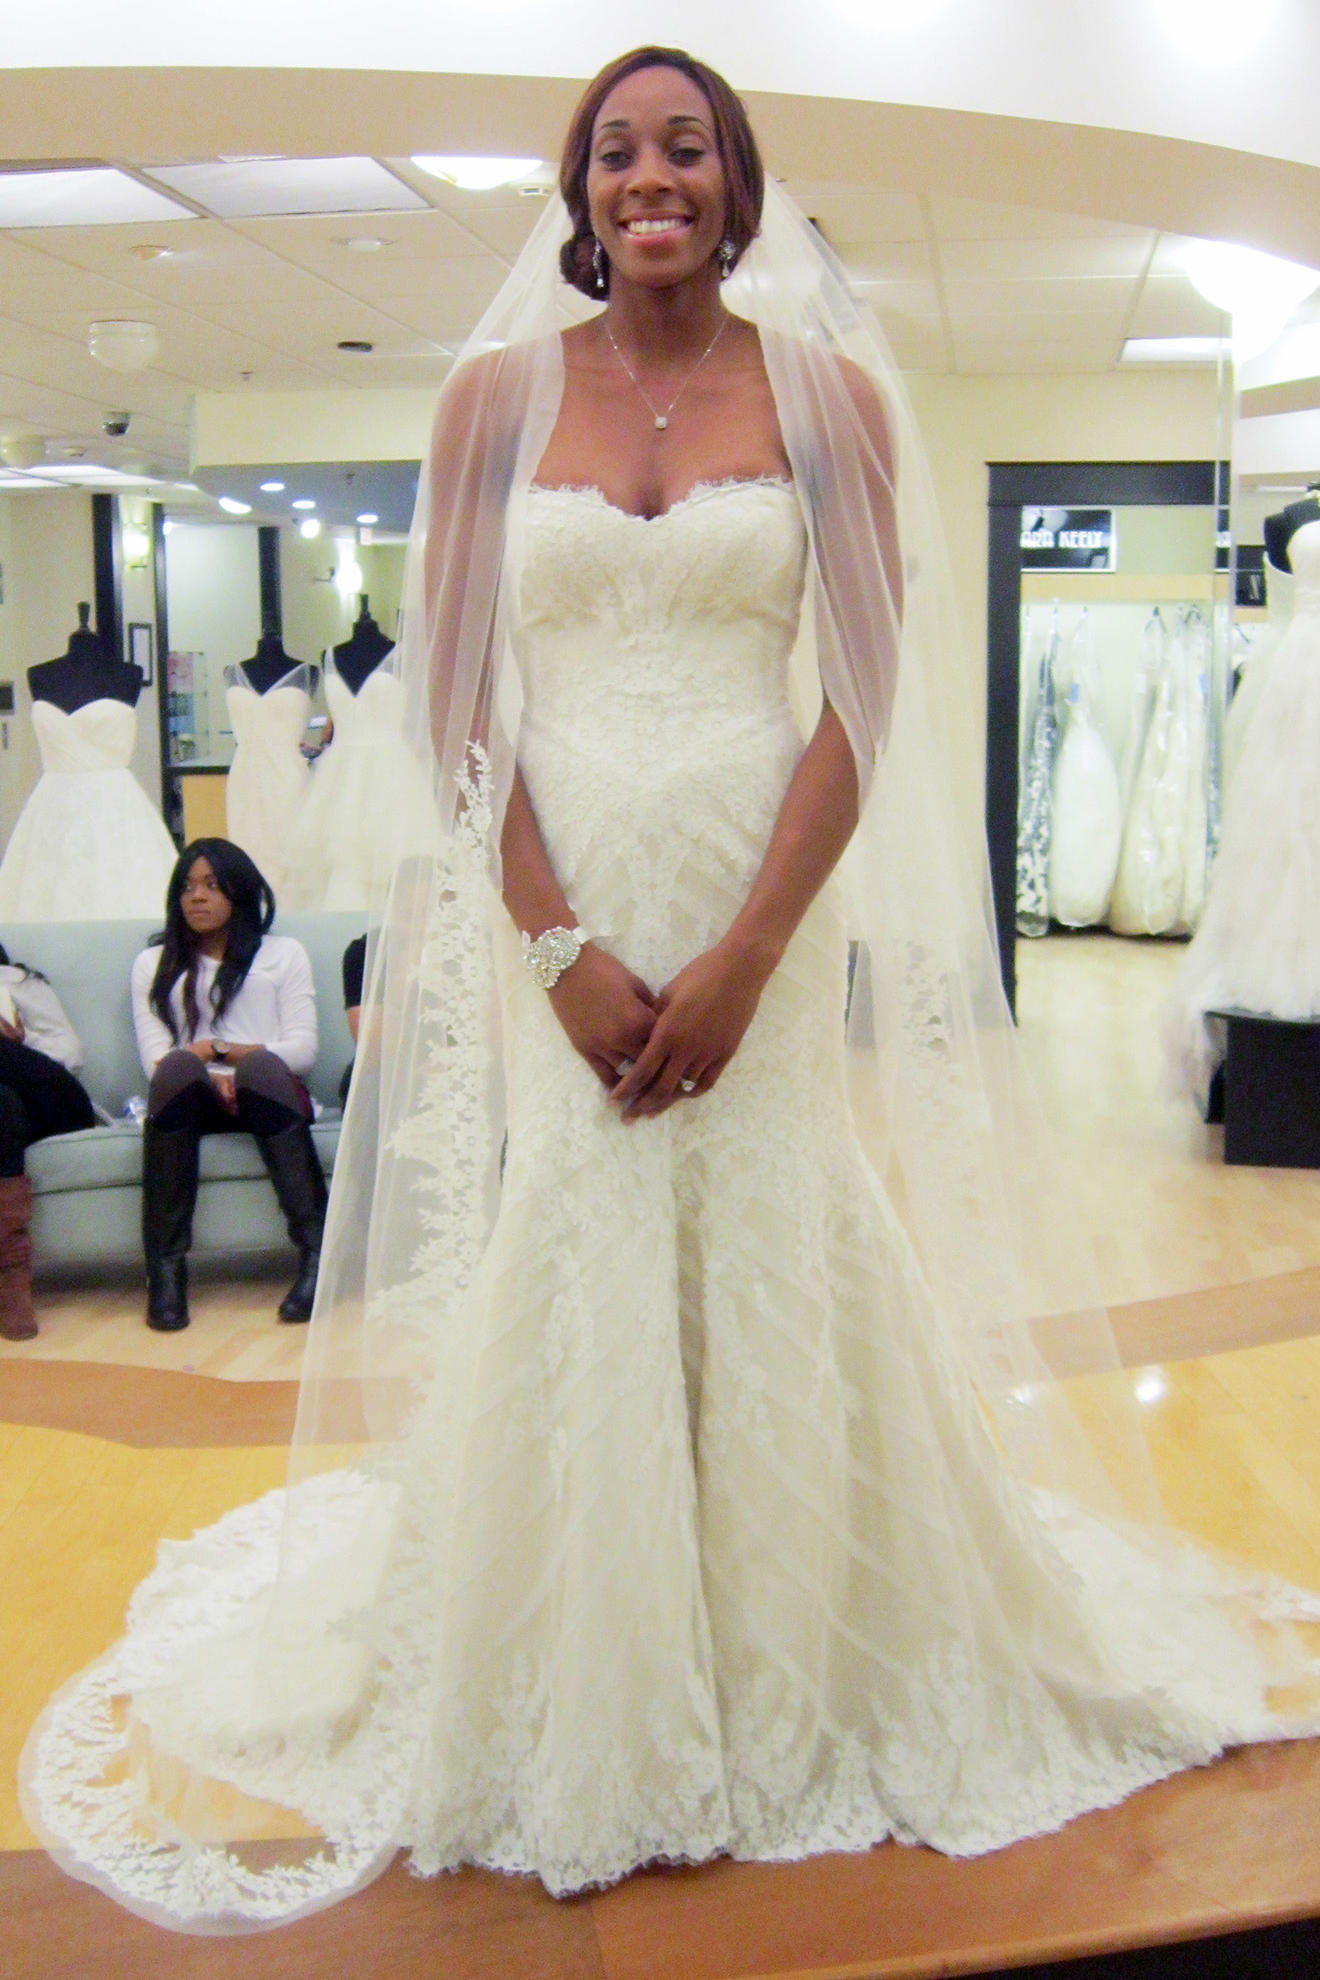 Our Fave Wedding Dresses From Season 8 | Say Yes to the Dress ...